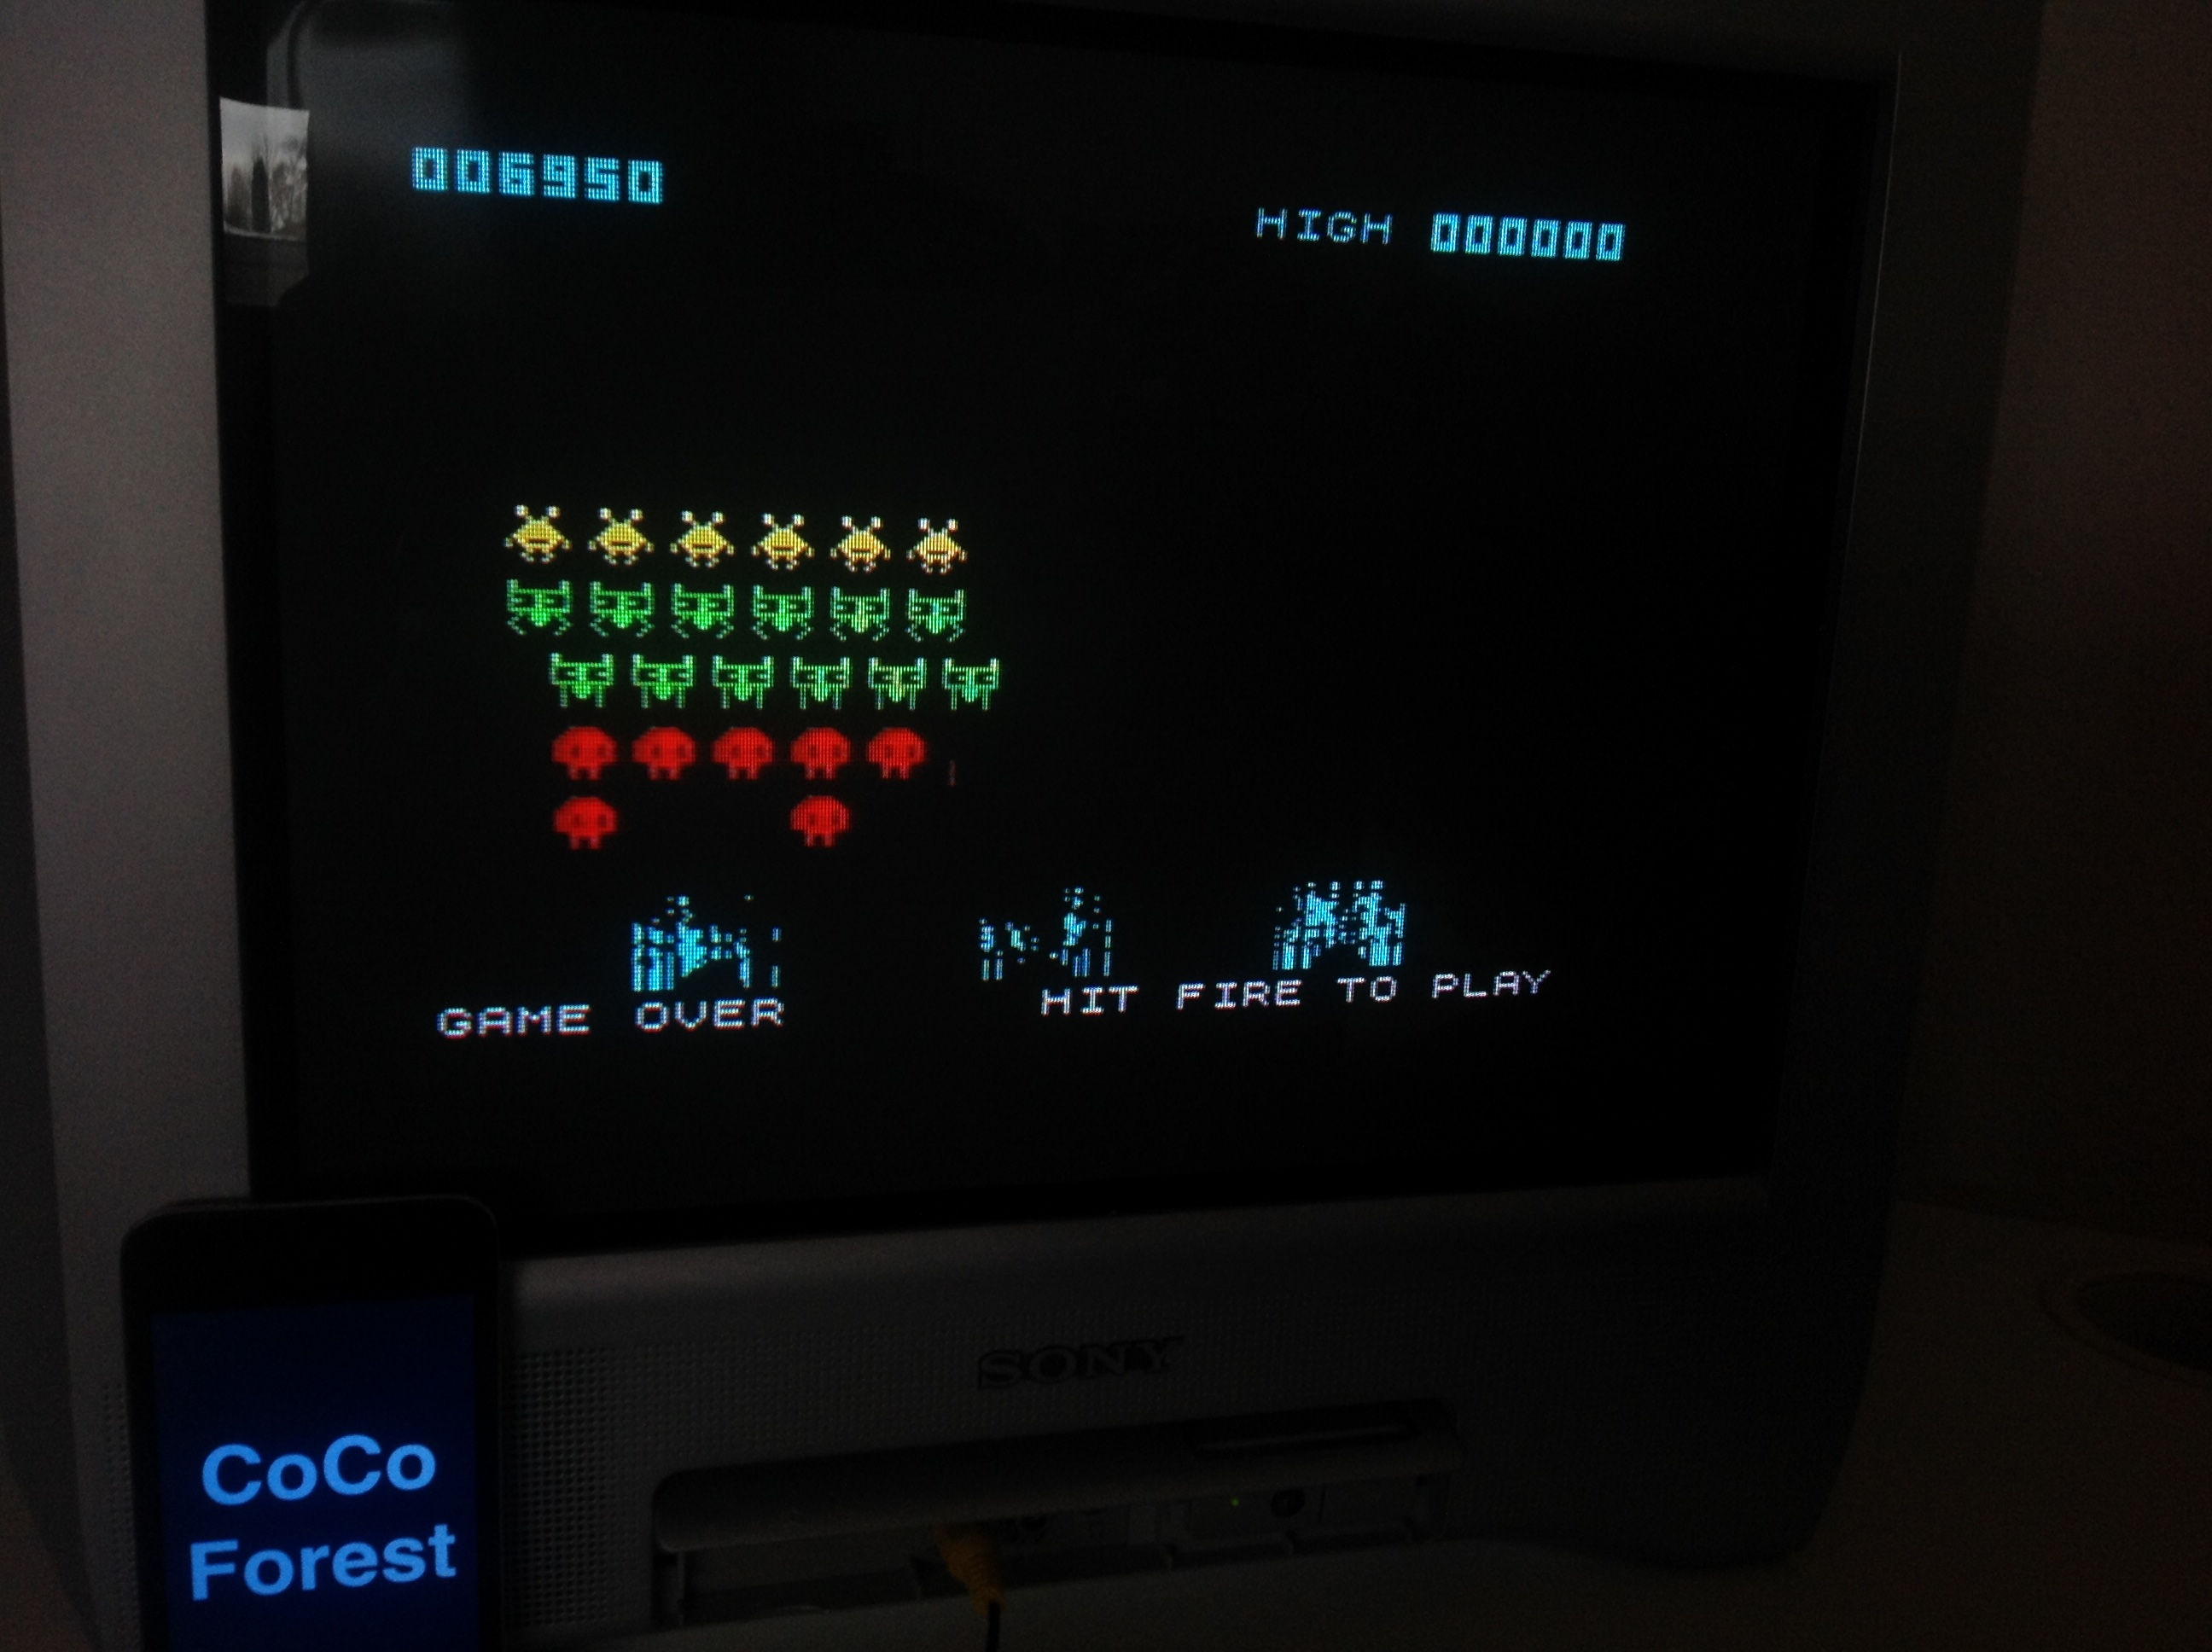 CoCoForest: Space Raiders (ZX Spectrum) 6,950 points on 2016-01-11 06:39:56